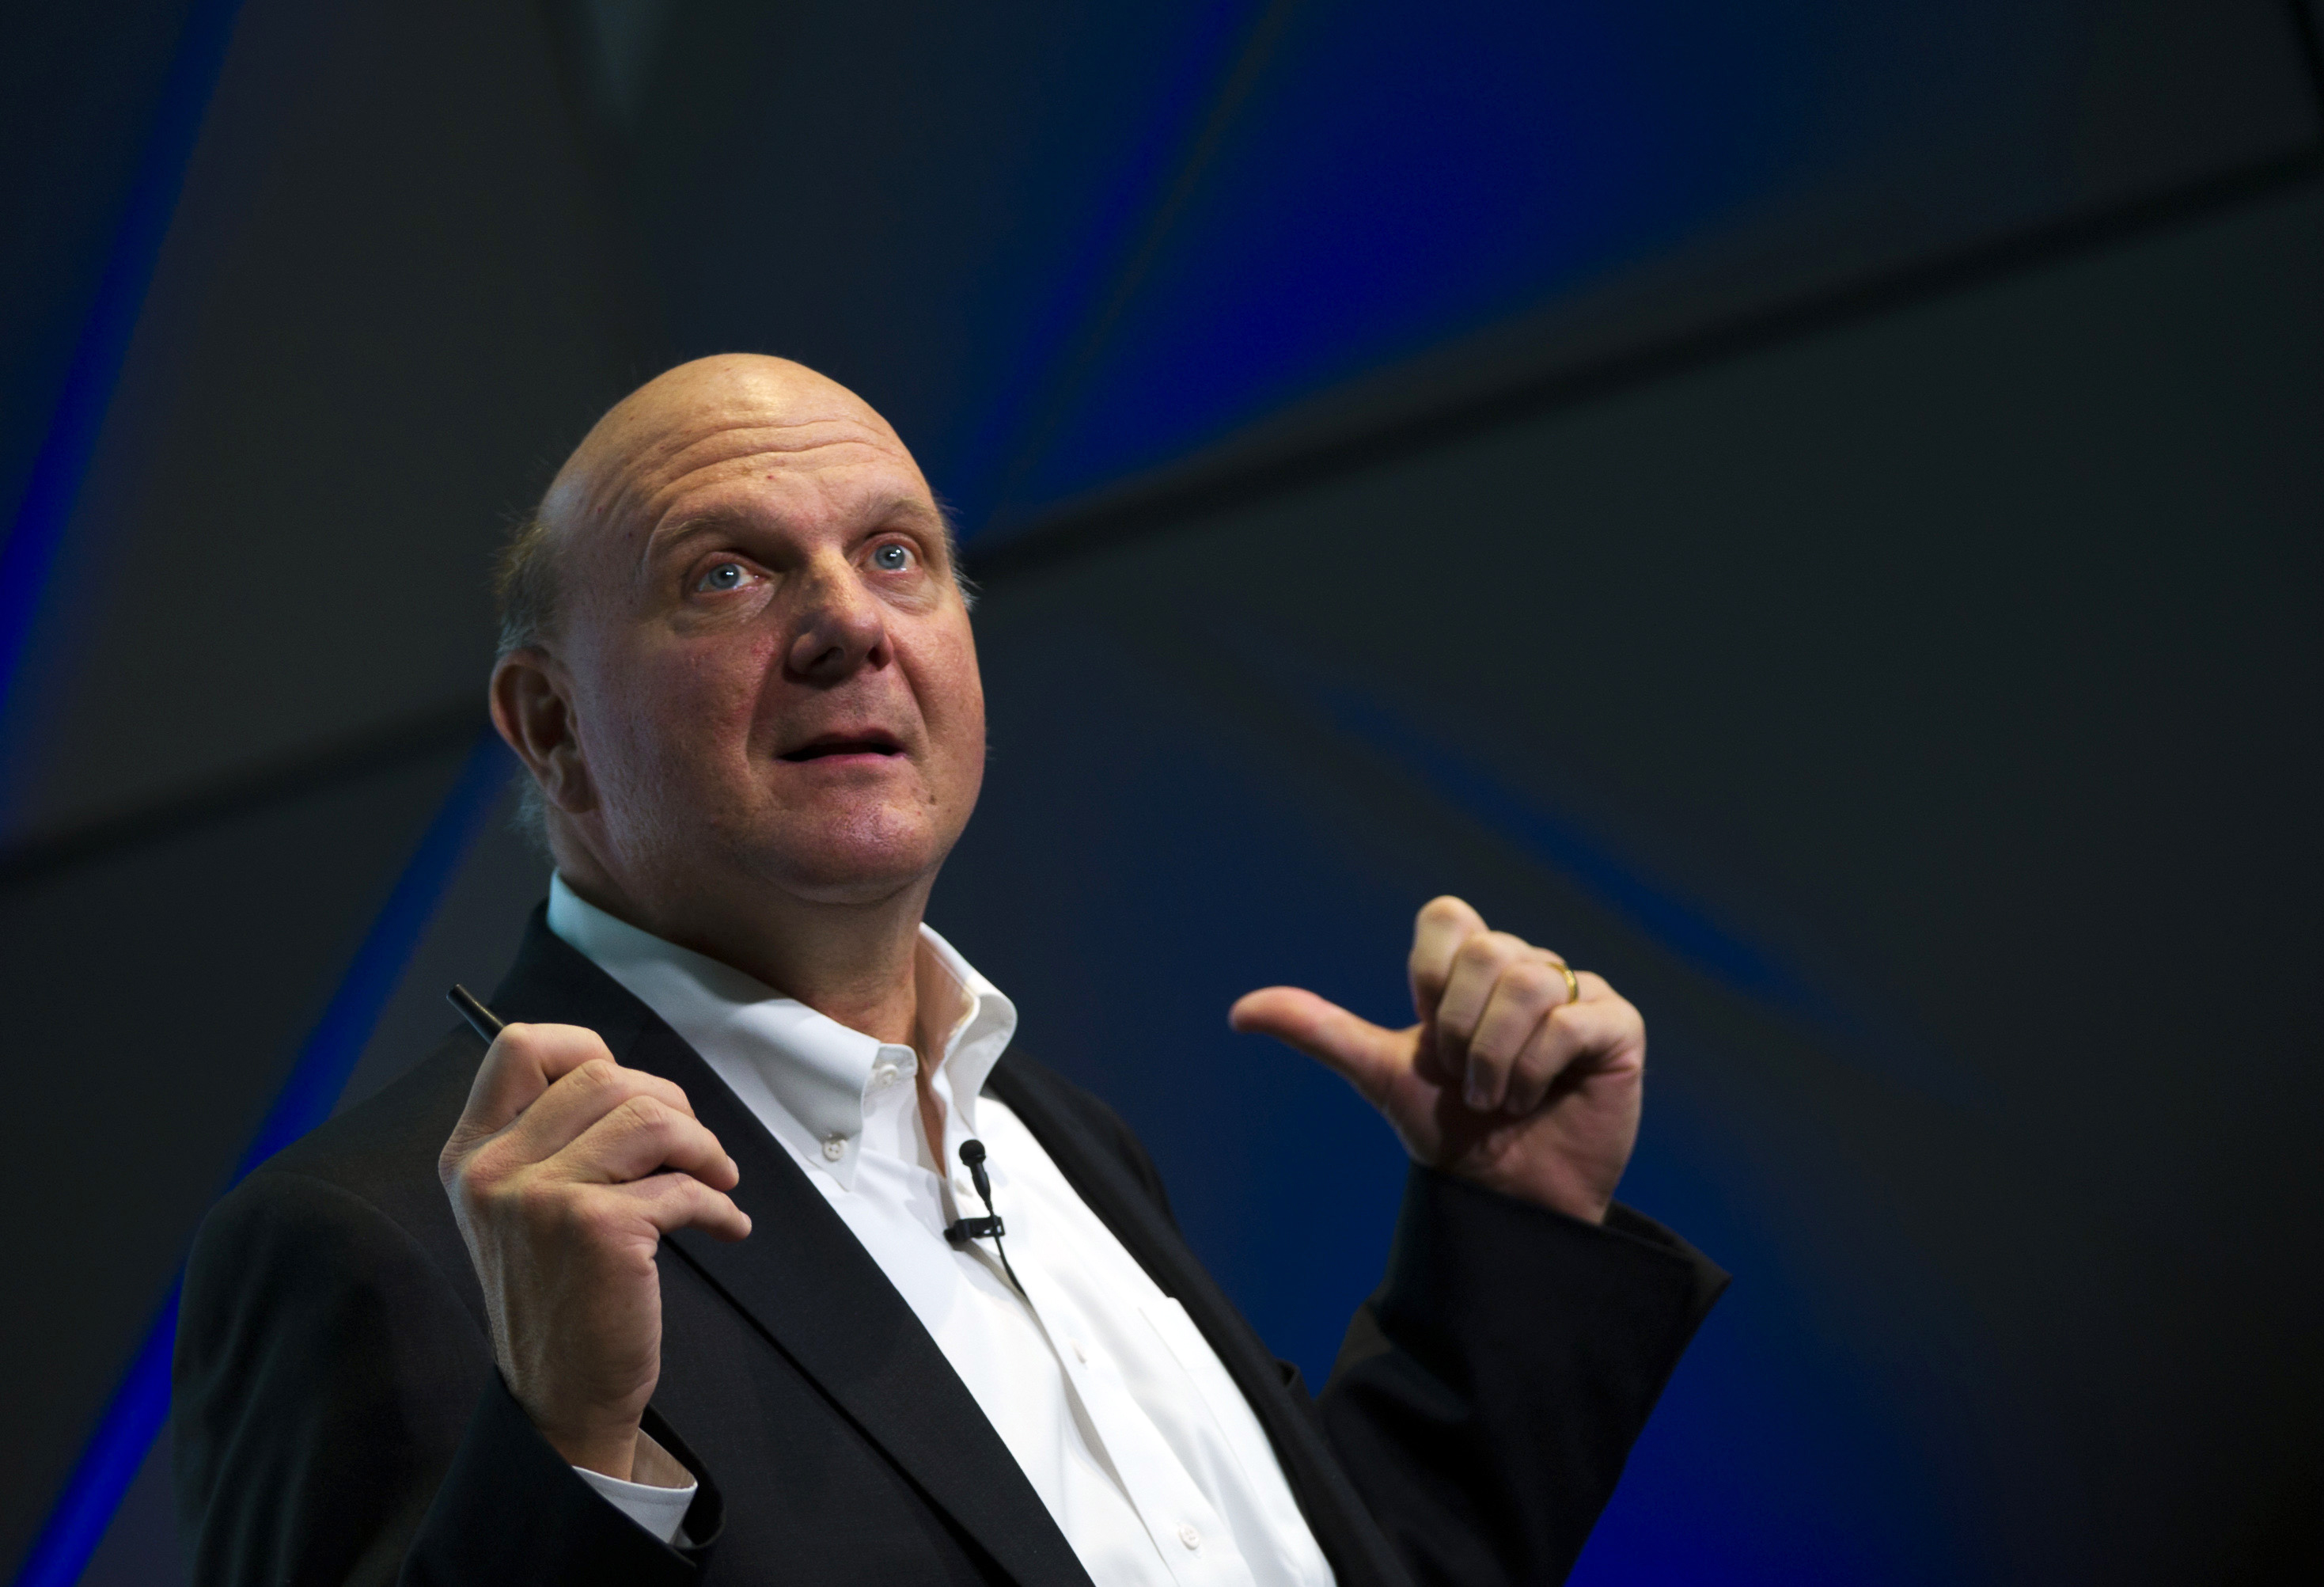 Former Microsoft CEO Steve Ballmer speaks during the opening of the Microsoft Ventures Berlin Accelerator on November 7, 2013 in Berlin.